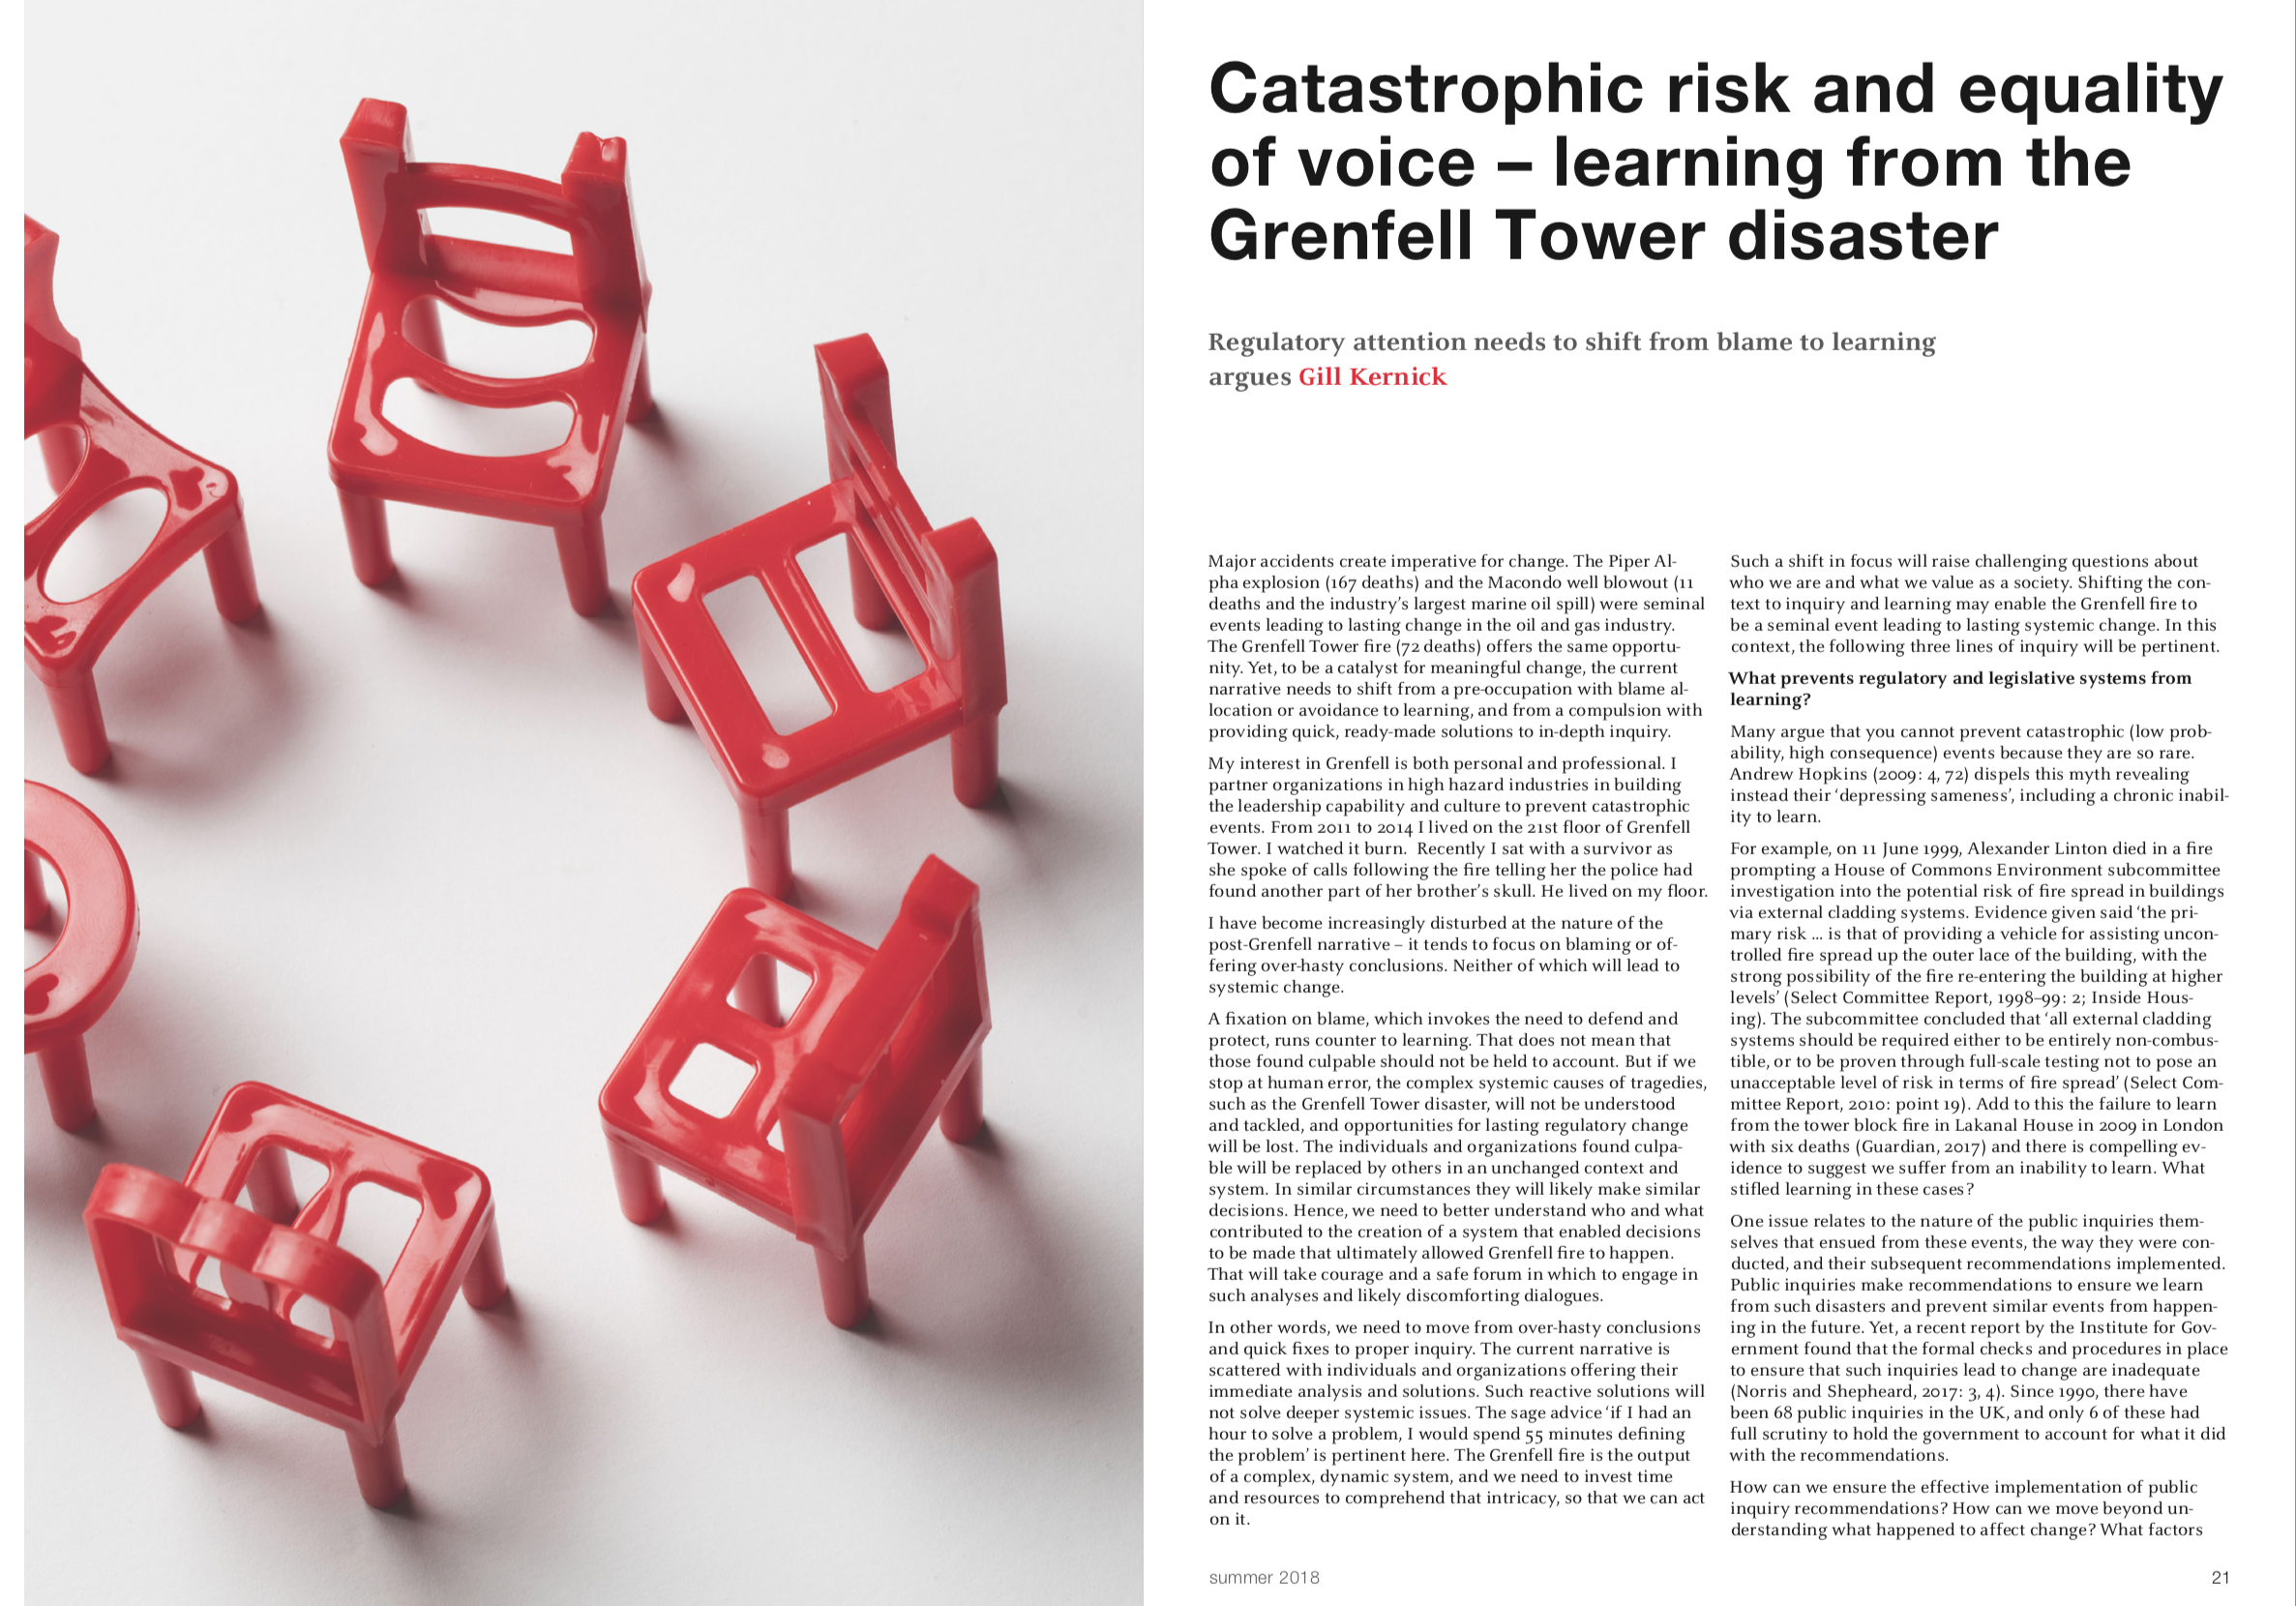 Catastrophic Risk and Equality of Voice - learning from the Grenfell Tower disaster, Gill Kernick